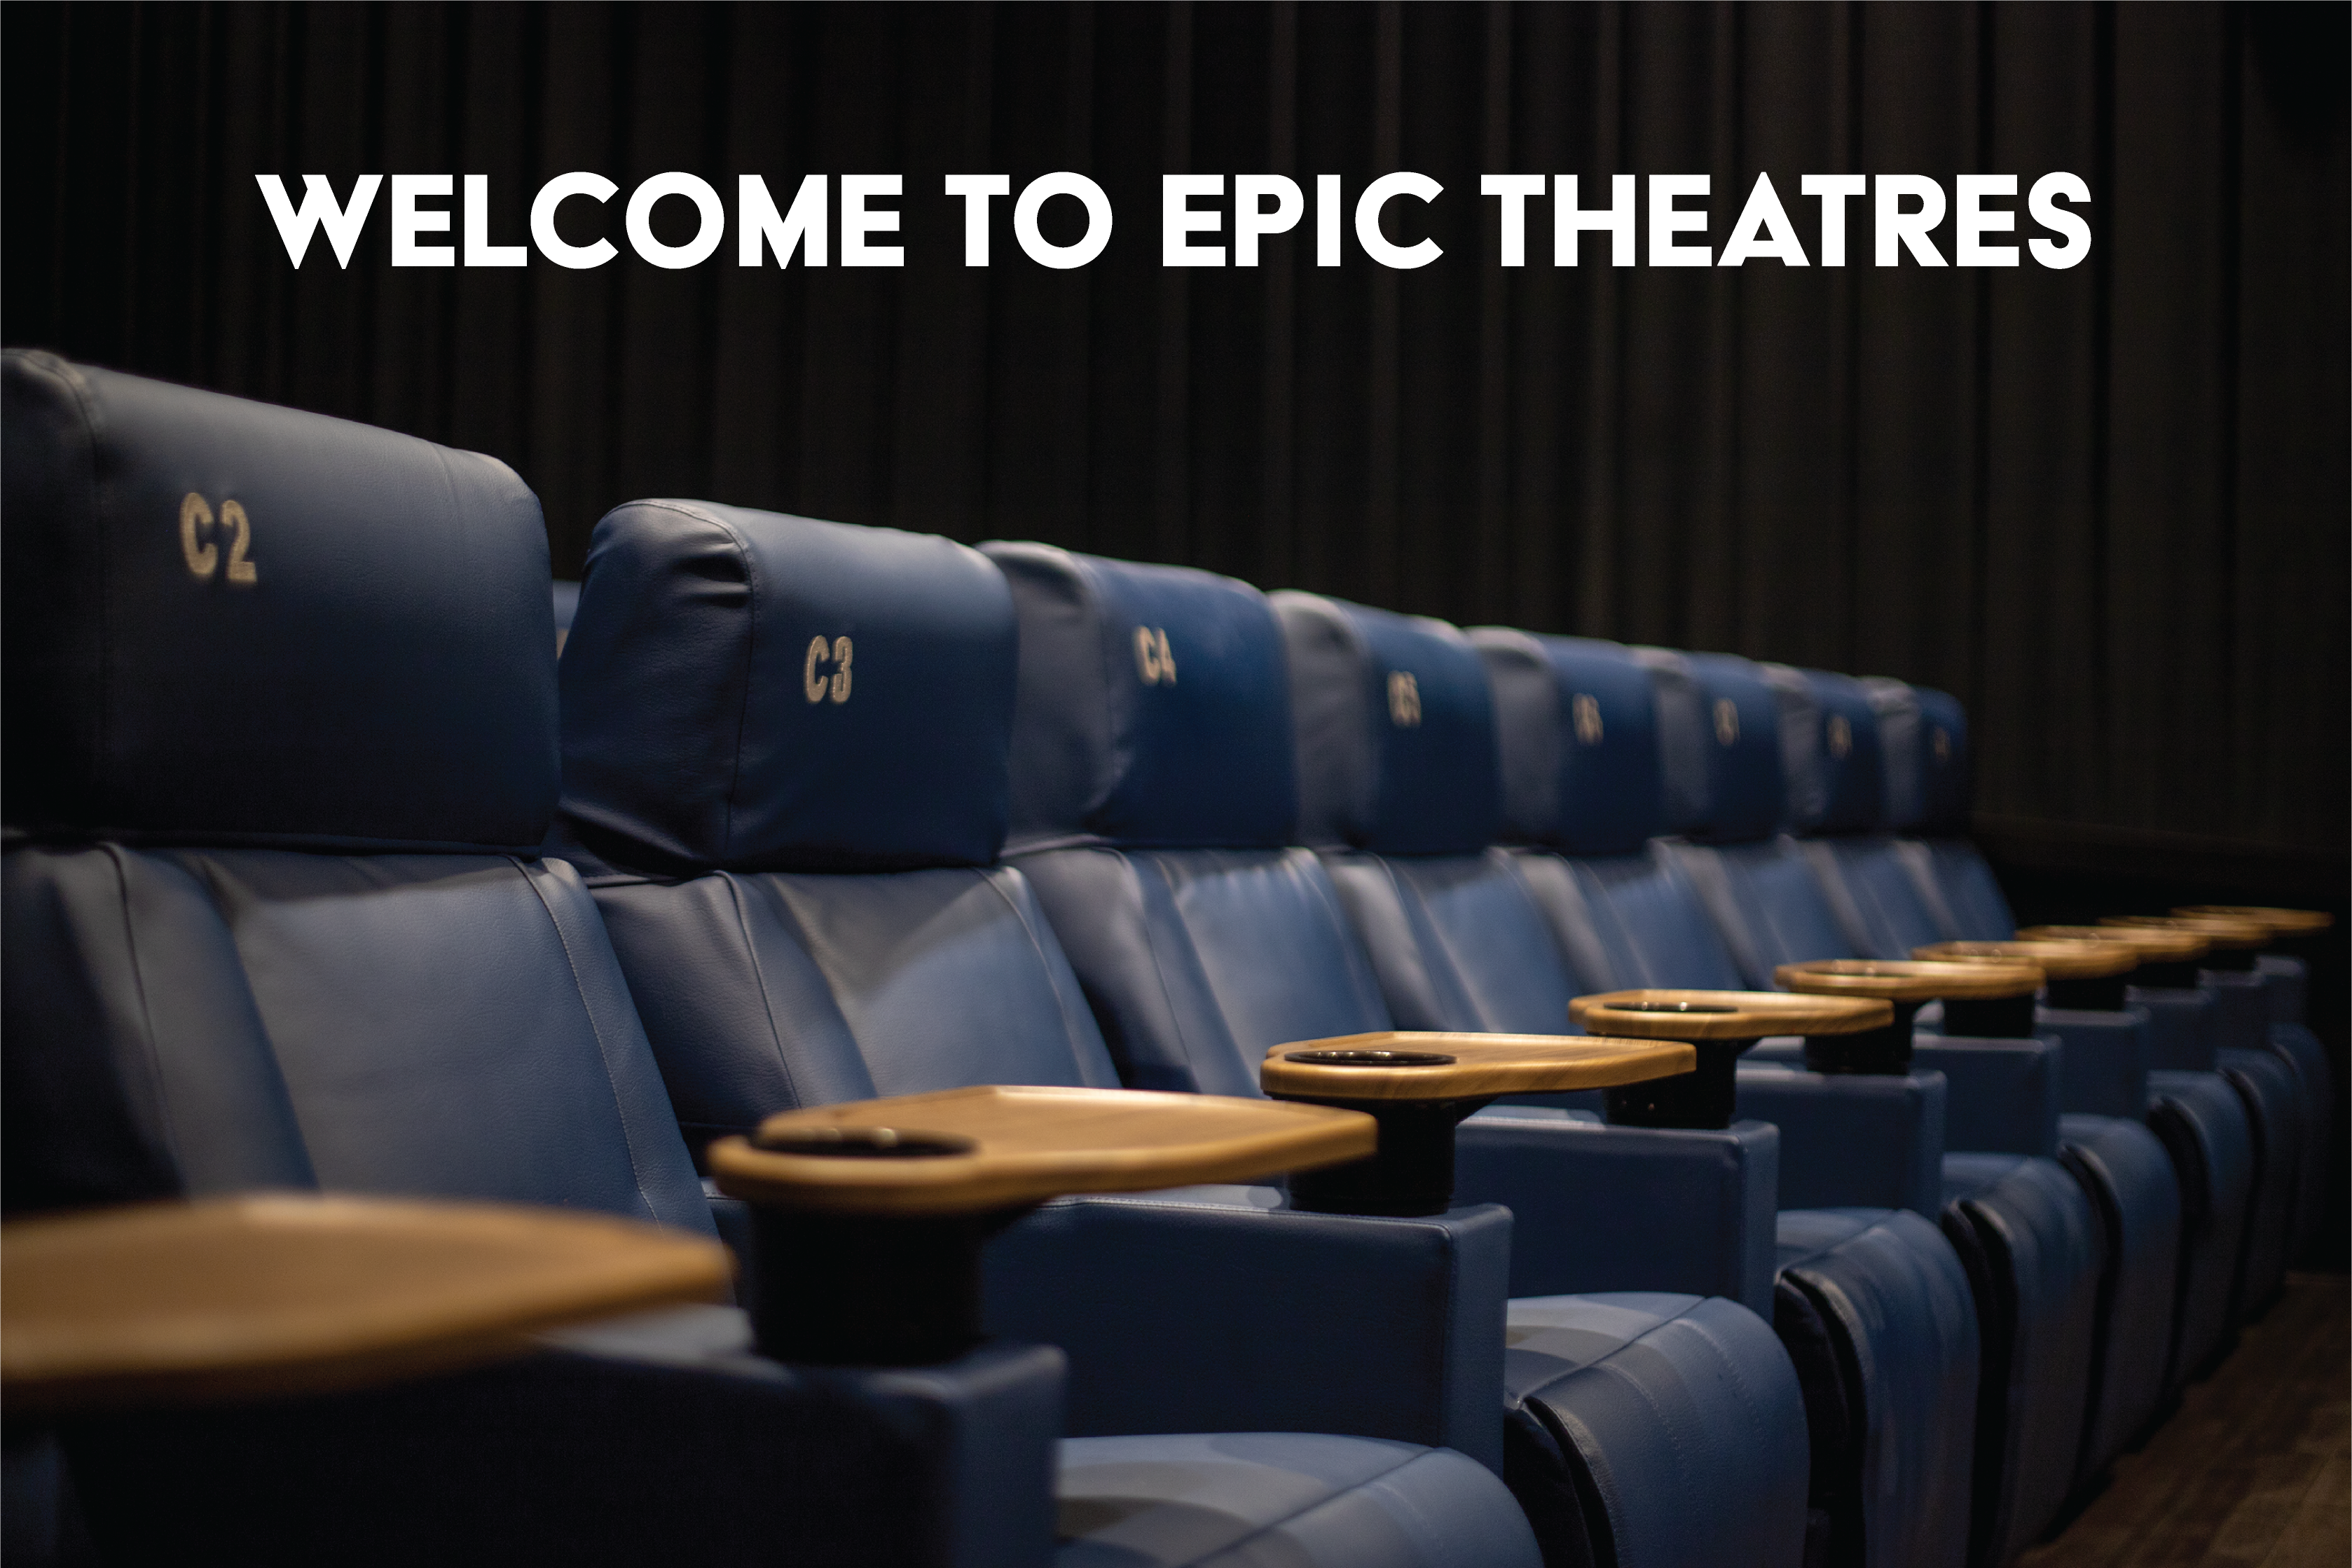 Welcome to Epic Theatres